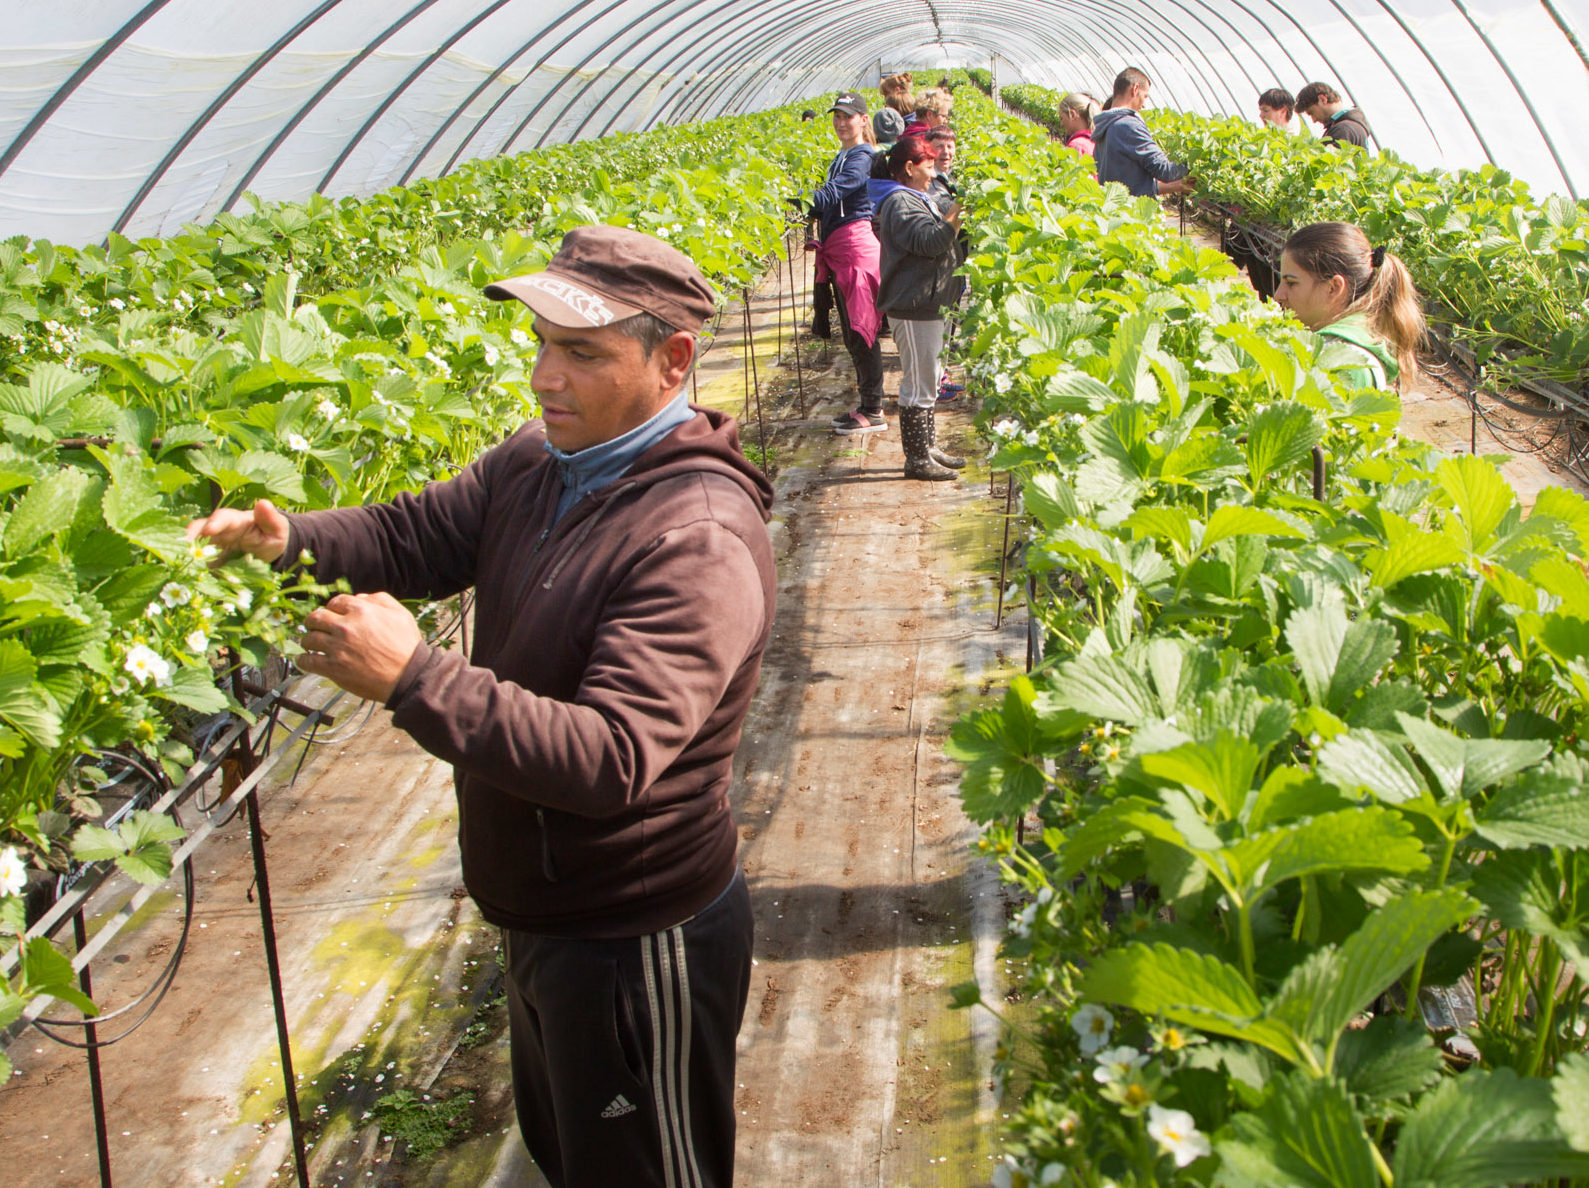 Only a fraction of the regular east European workforce required by growers is currently in the country.